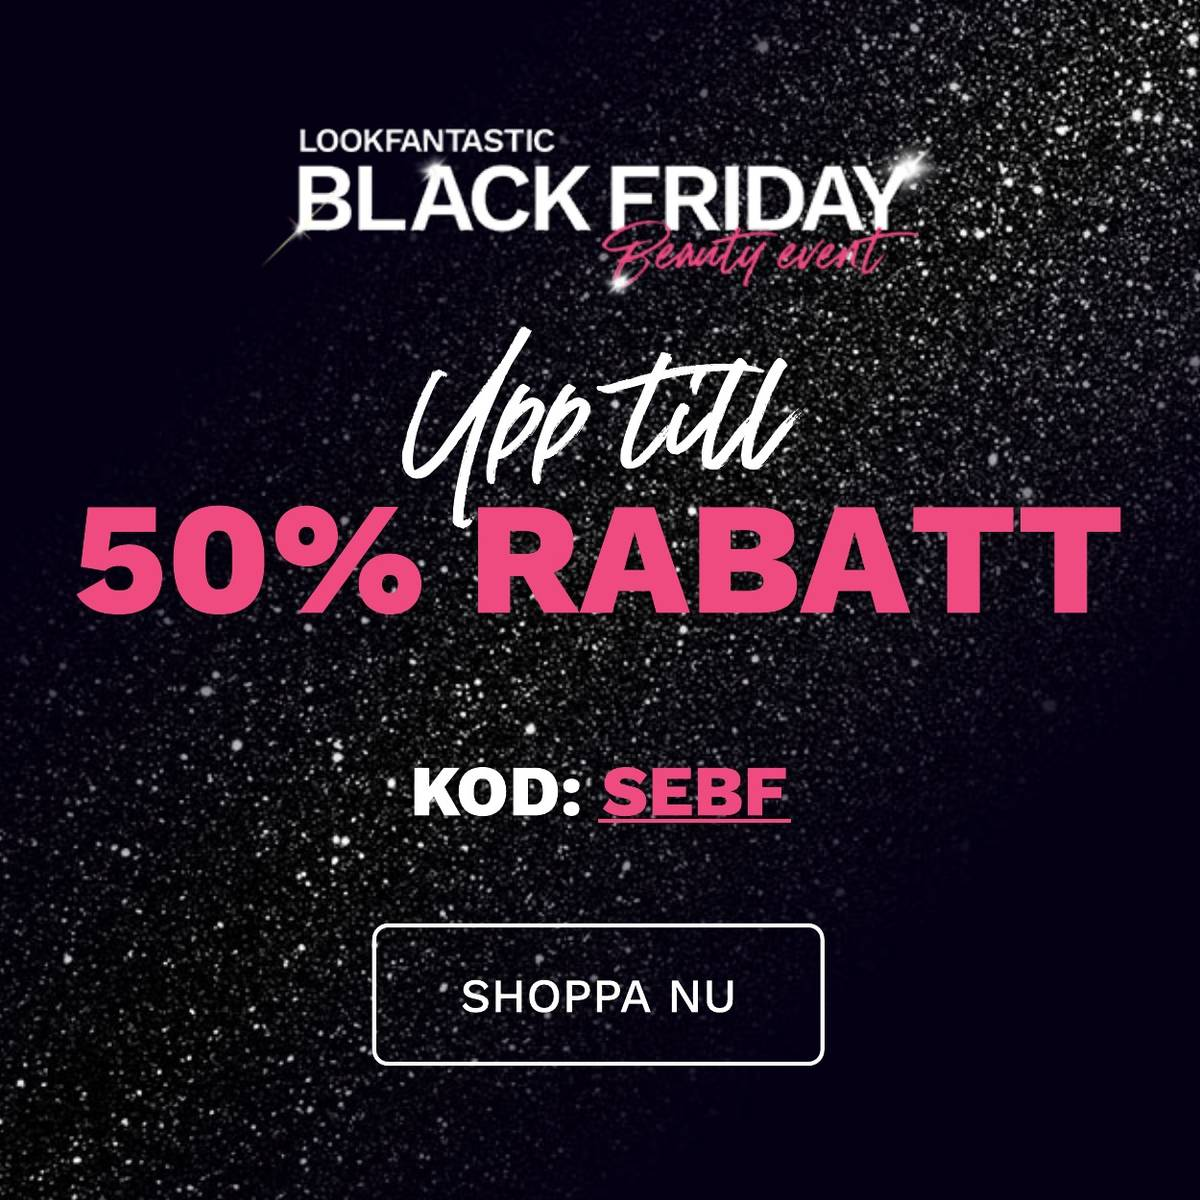 SE Cyber week up to 50% off